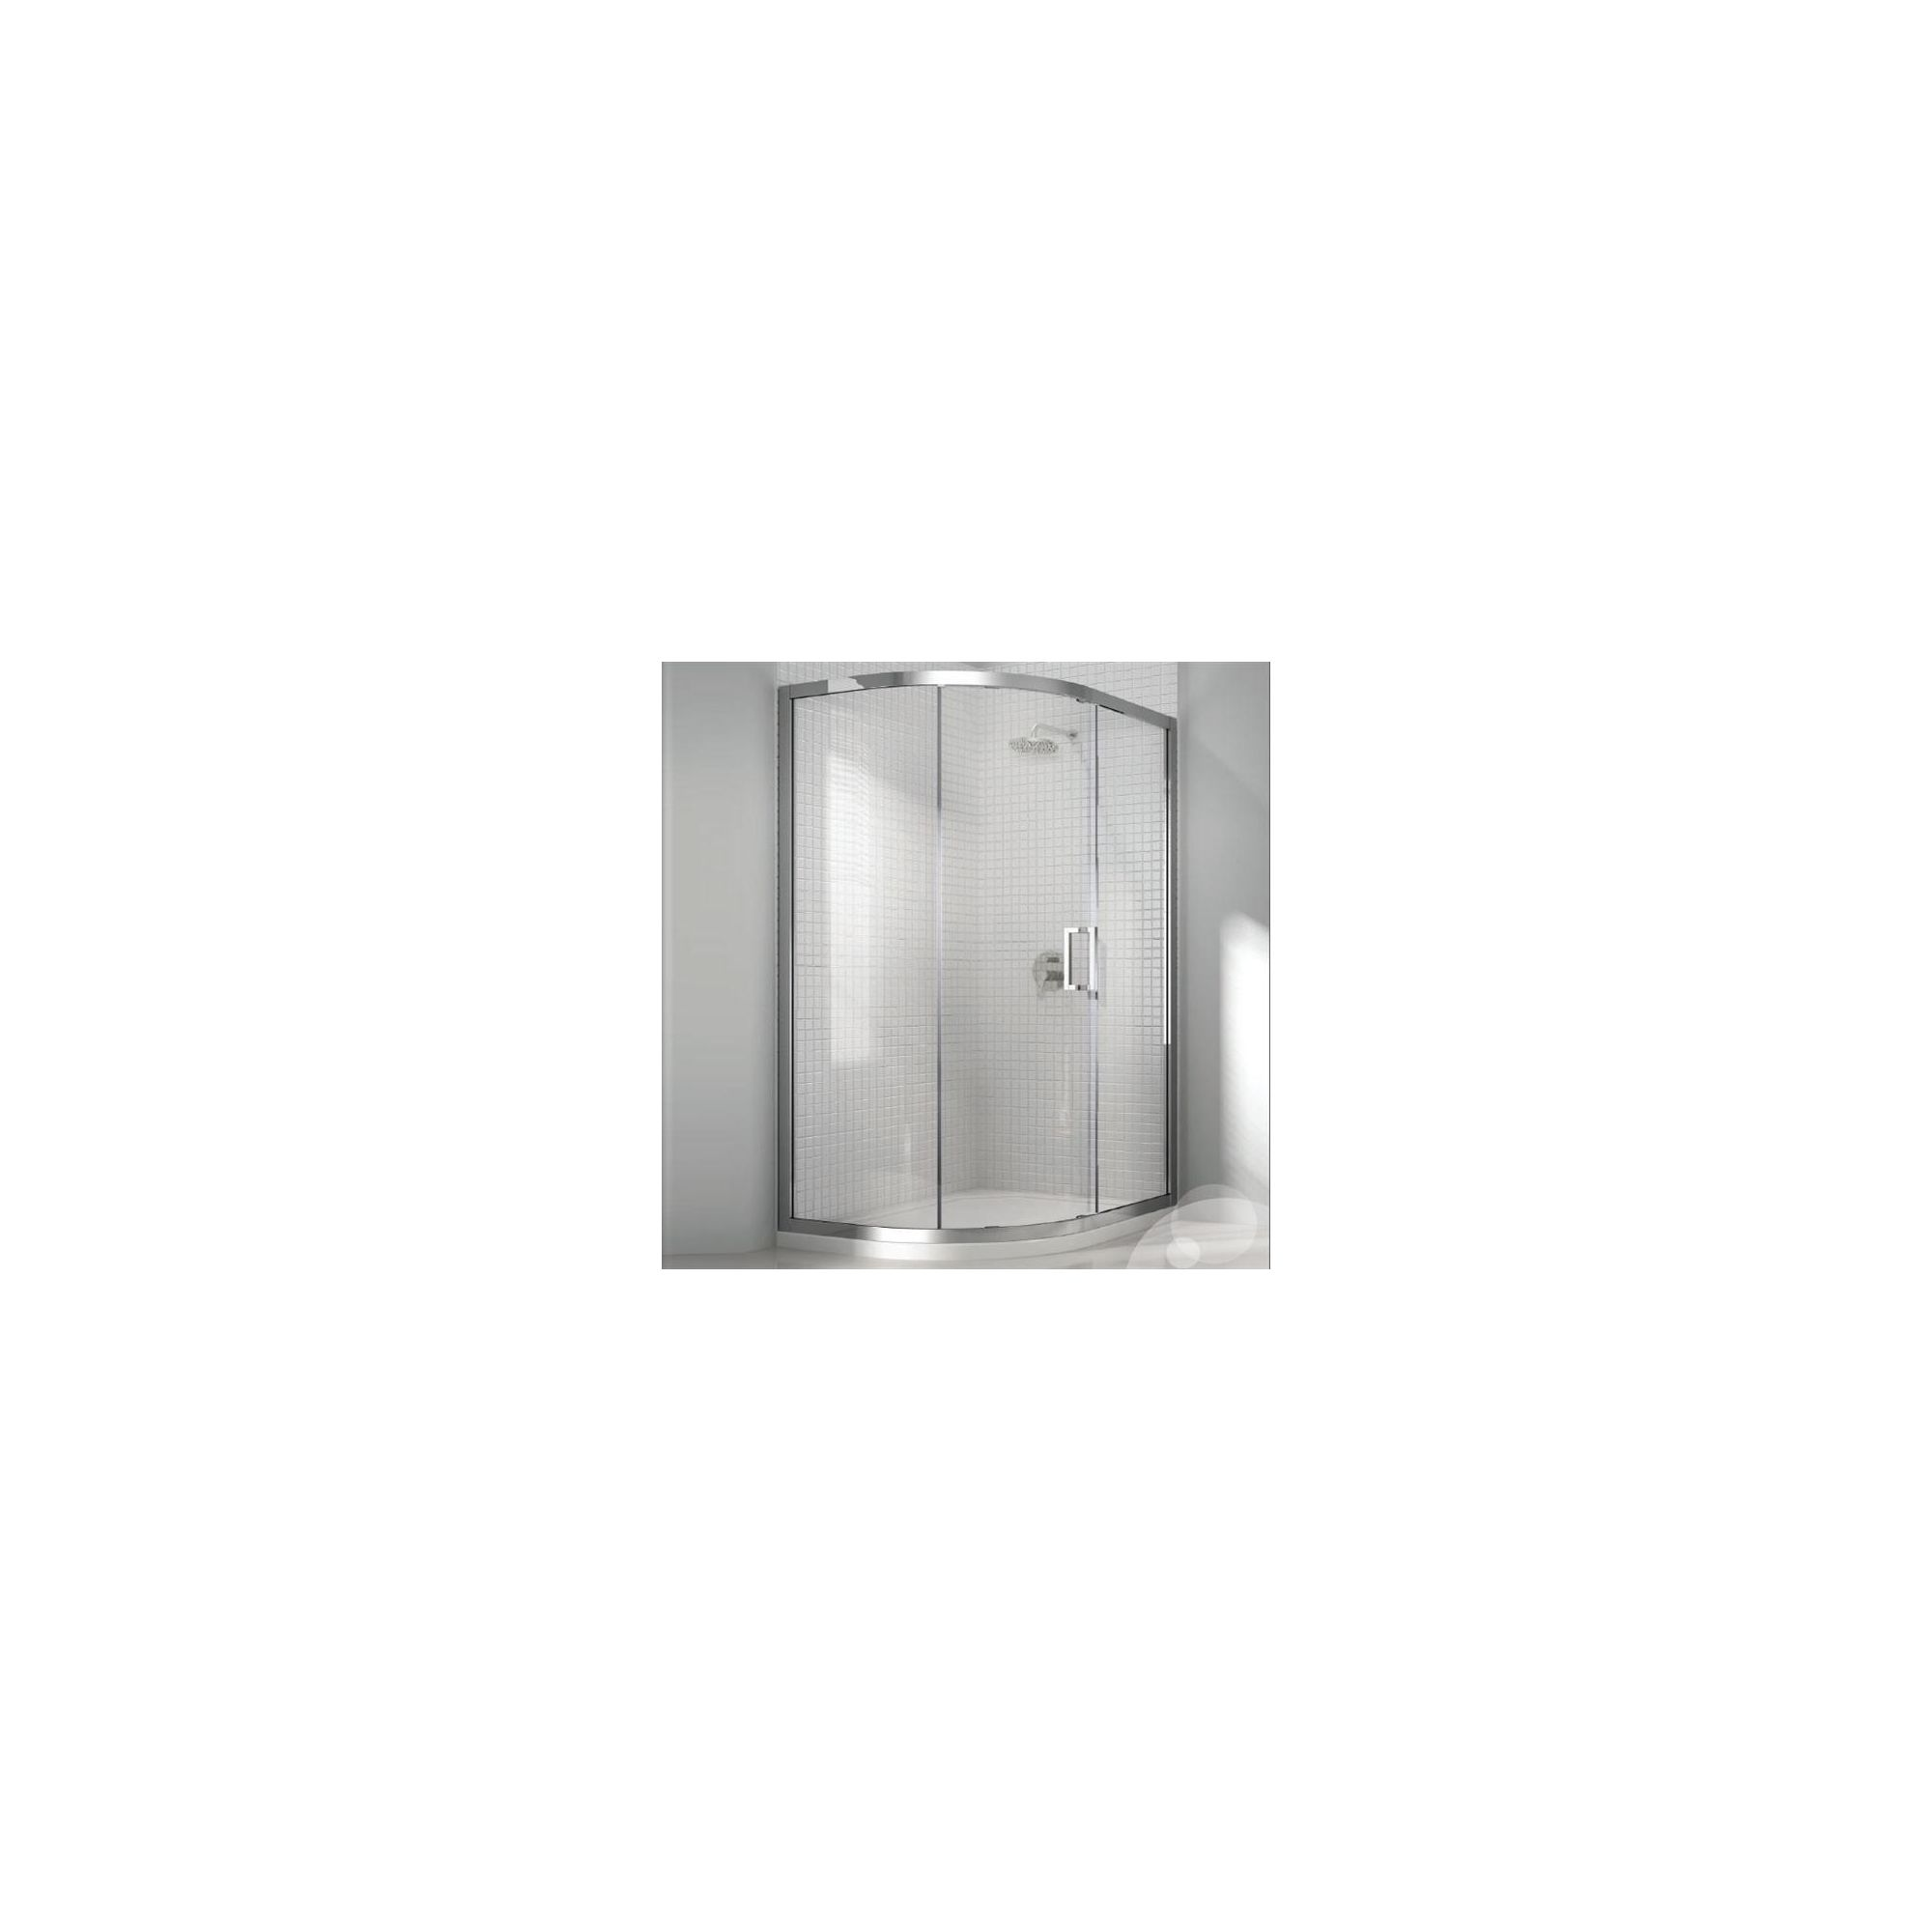 Merlyn Vivid Eight Offset Quadrant Shower Enclosure, 1200mm x 900mm, Left Handed, Low Profile Tray, 8mm Glass at Tescos Direct